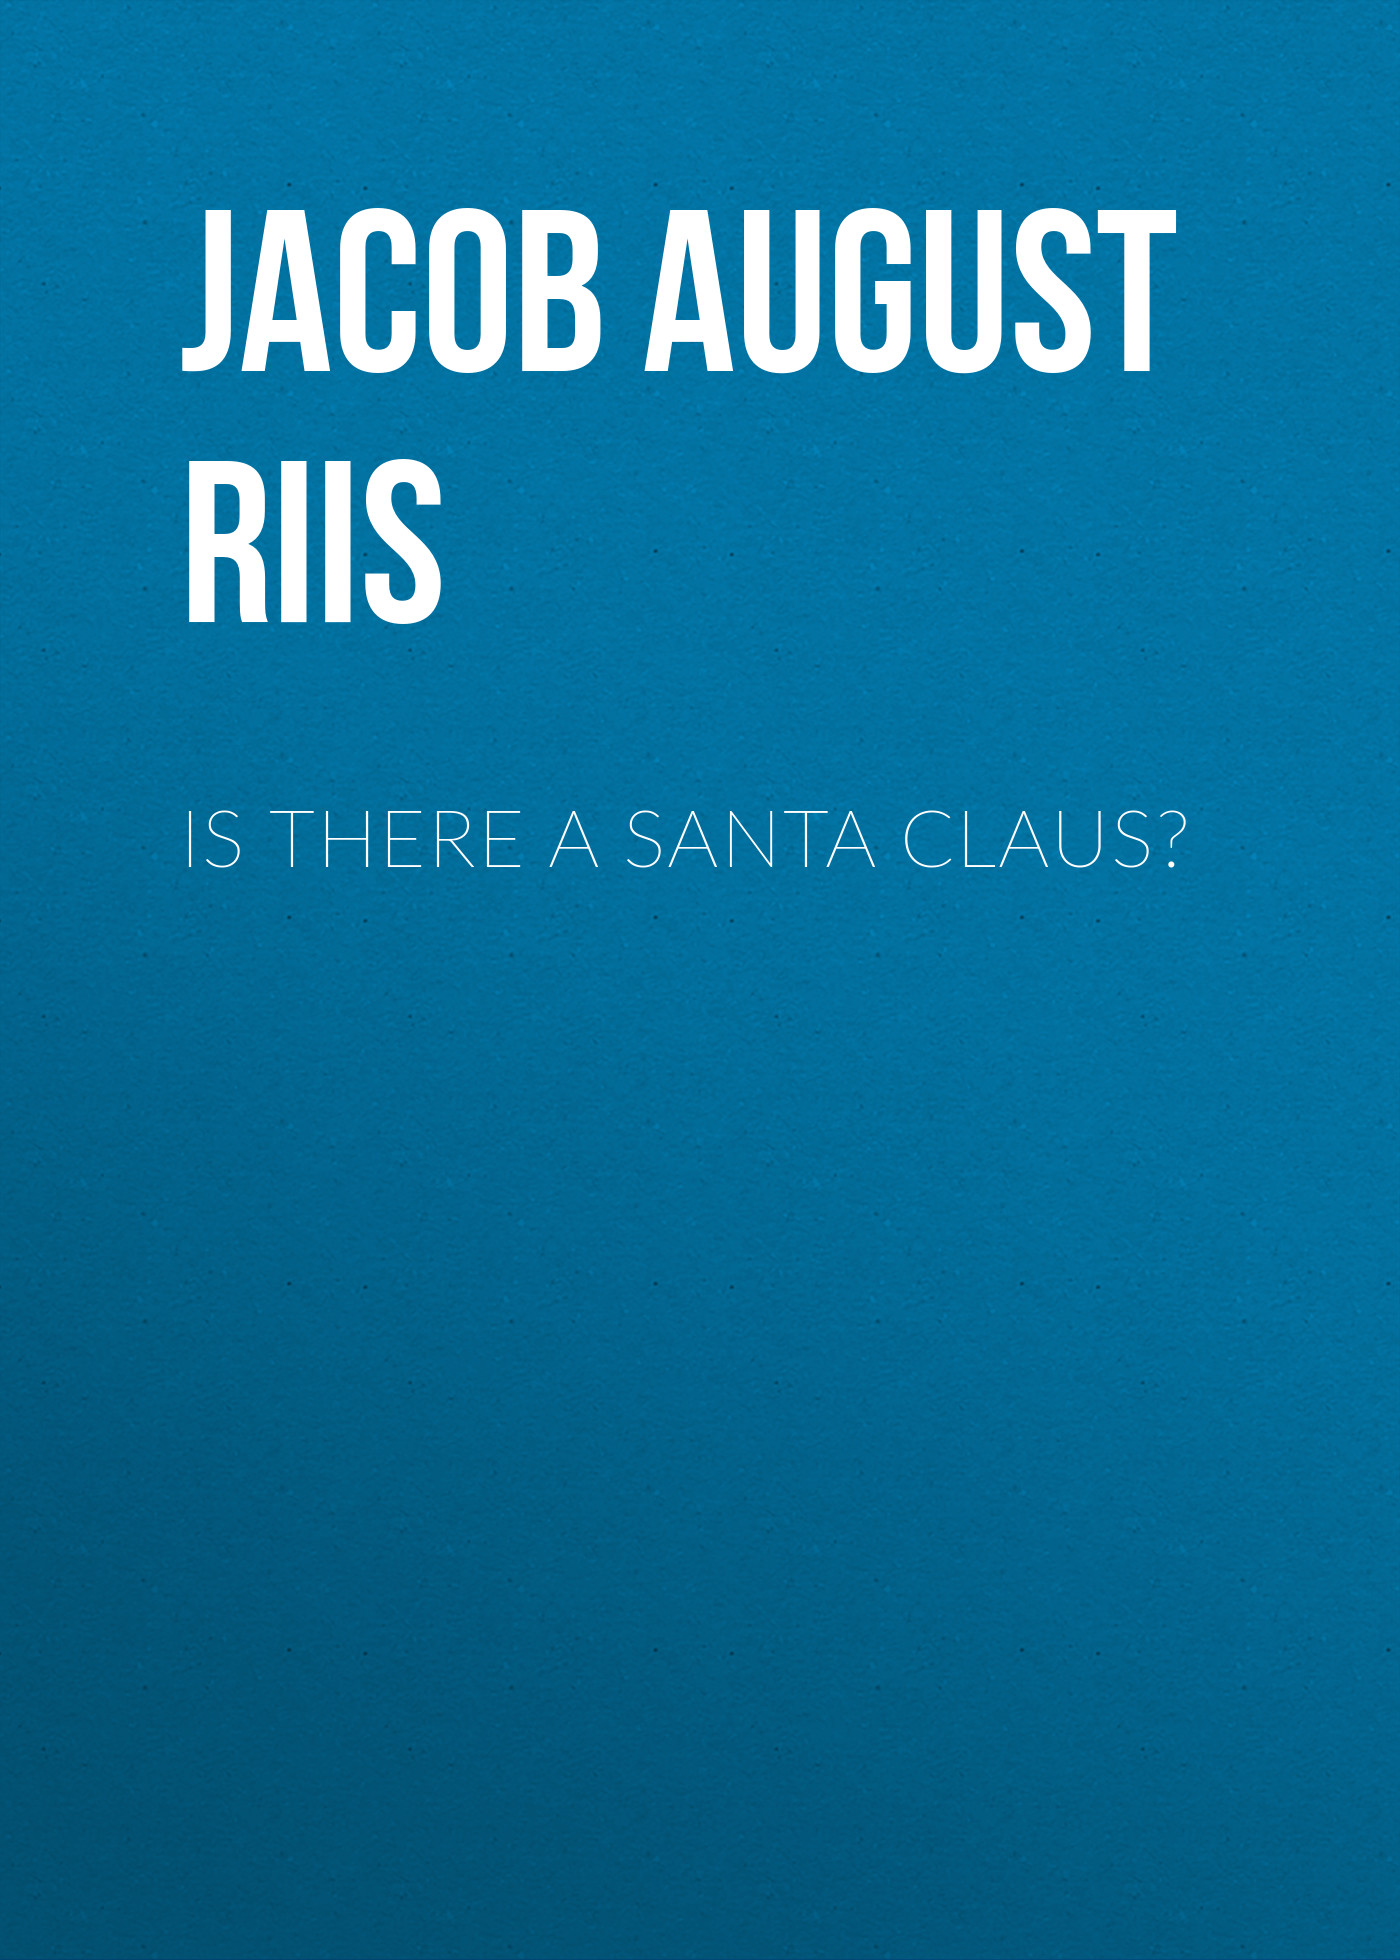 Jacob August Riis Is There a Santa Claus? santa claus